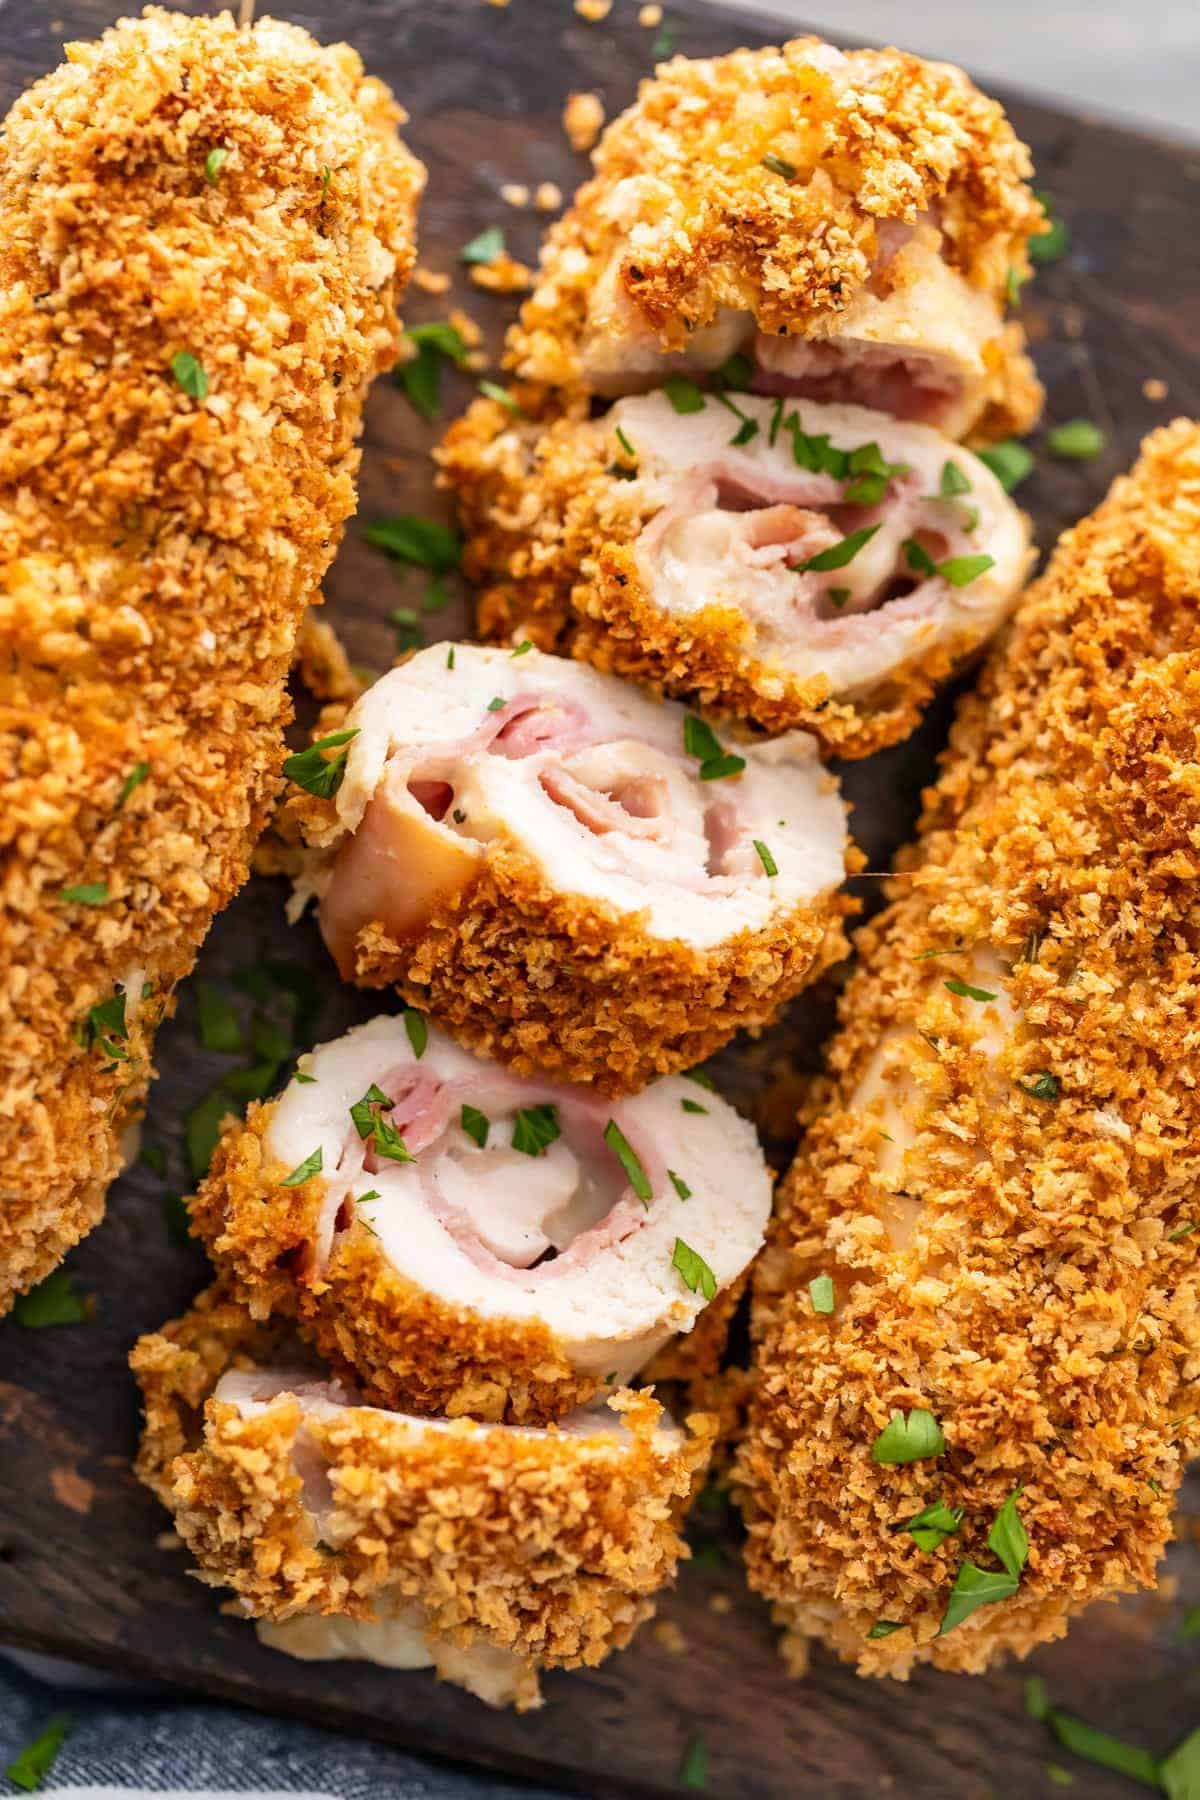 Baked Chicken Cordon Bleu is a delicious and healthy take on a classic chicken recipe. Layers of tender chicken, cheese, ham, and dijon sauce make this easy chicken recipe epic and a total mainstay.